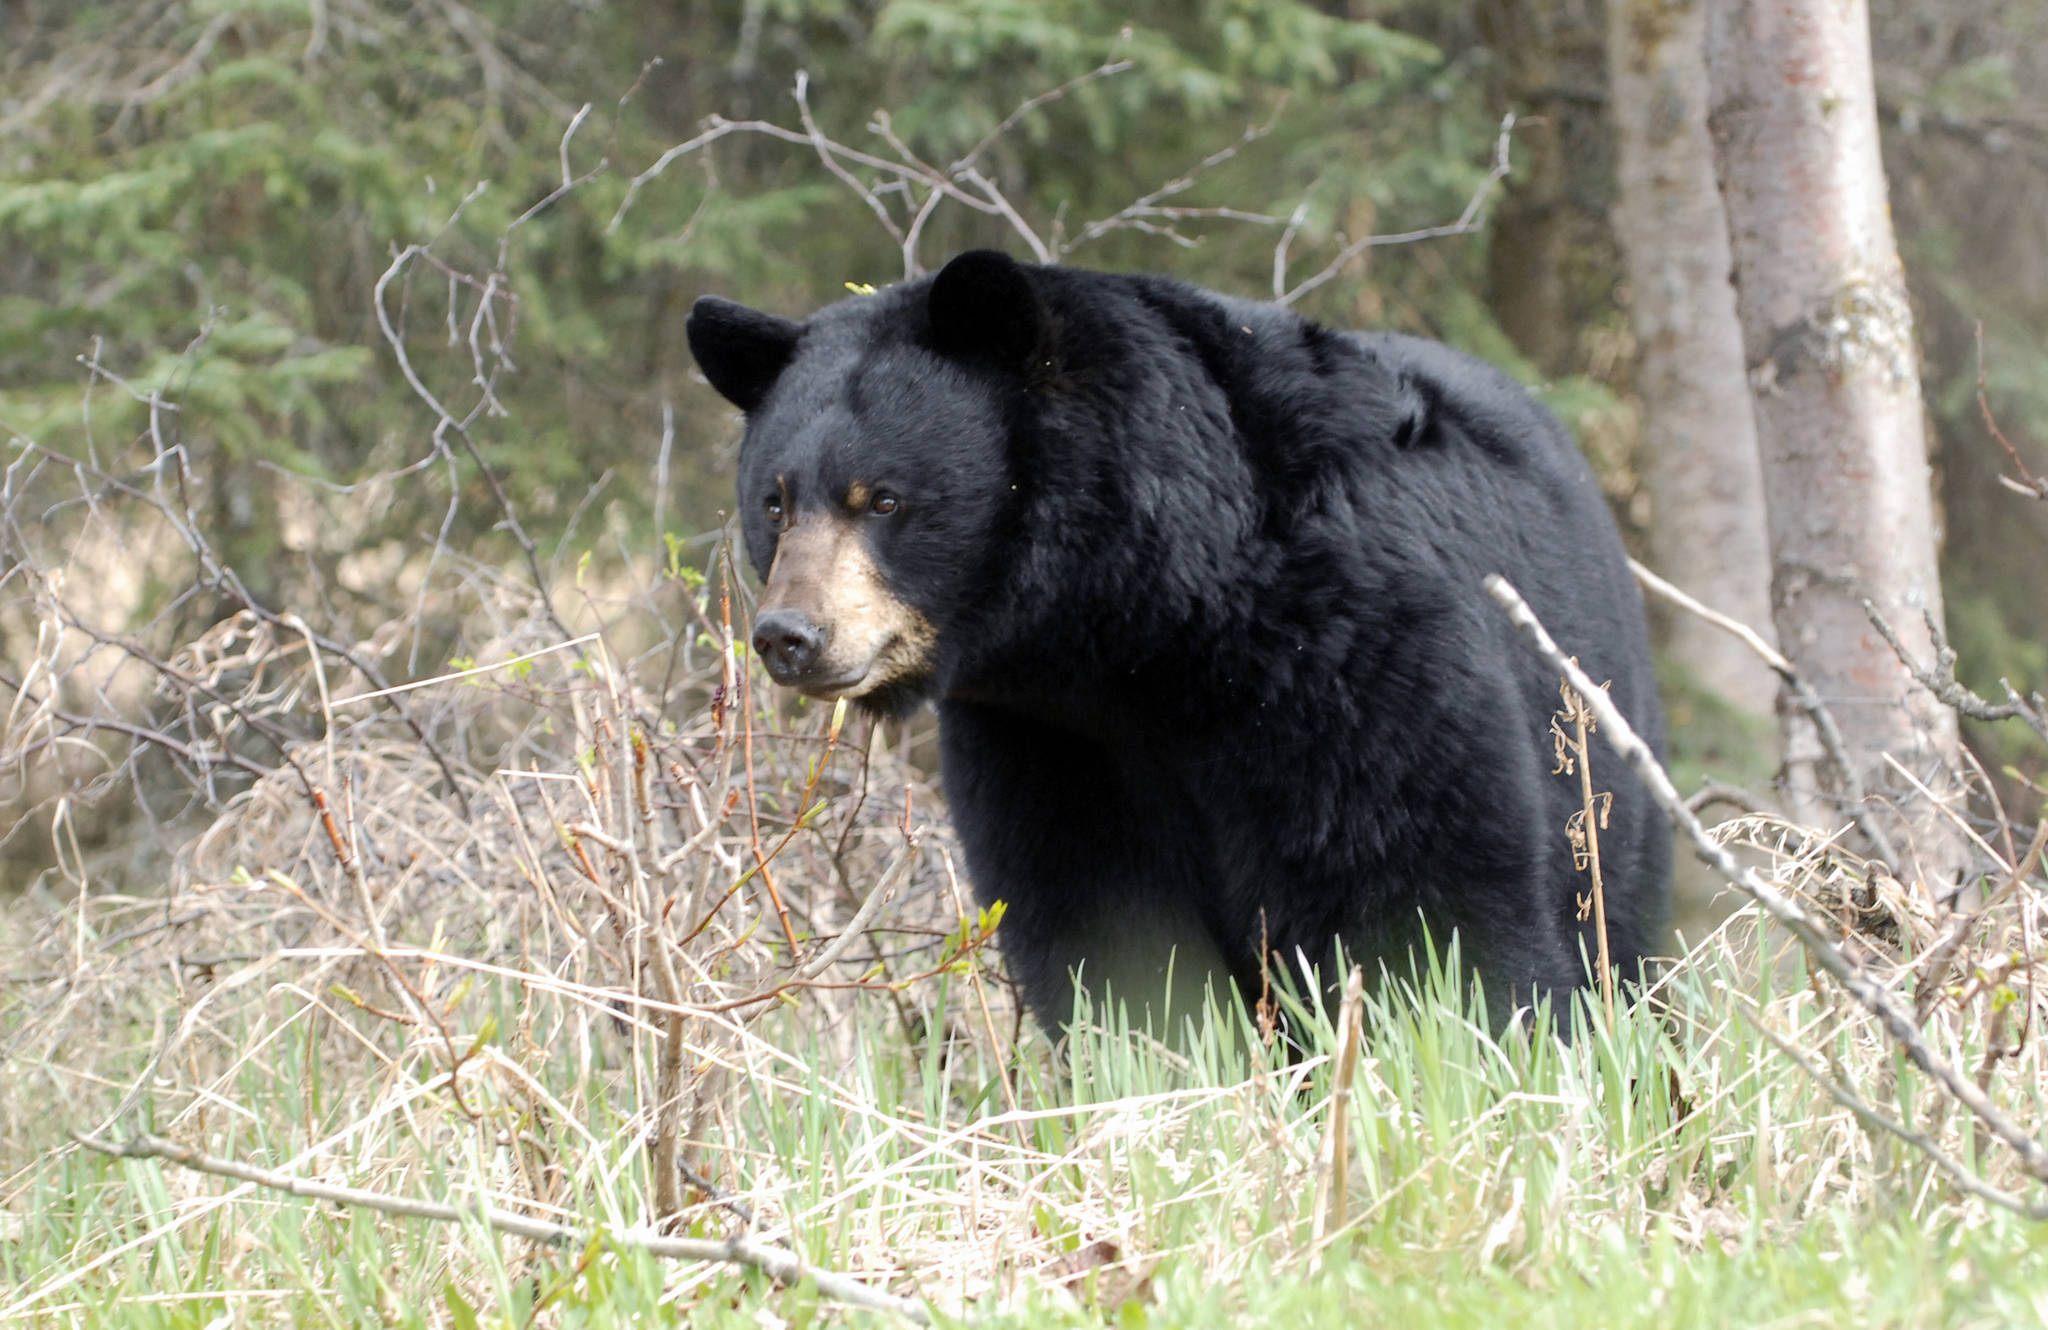 Fish And Game Kills 2 Black Bears In Eagle River Valley